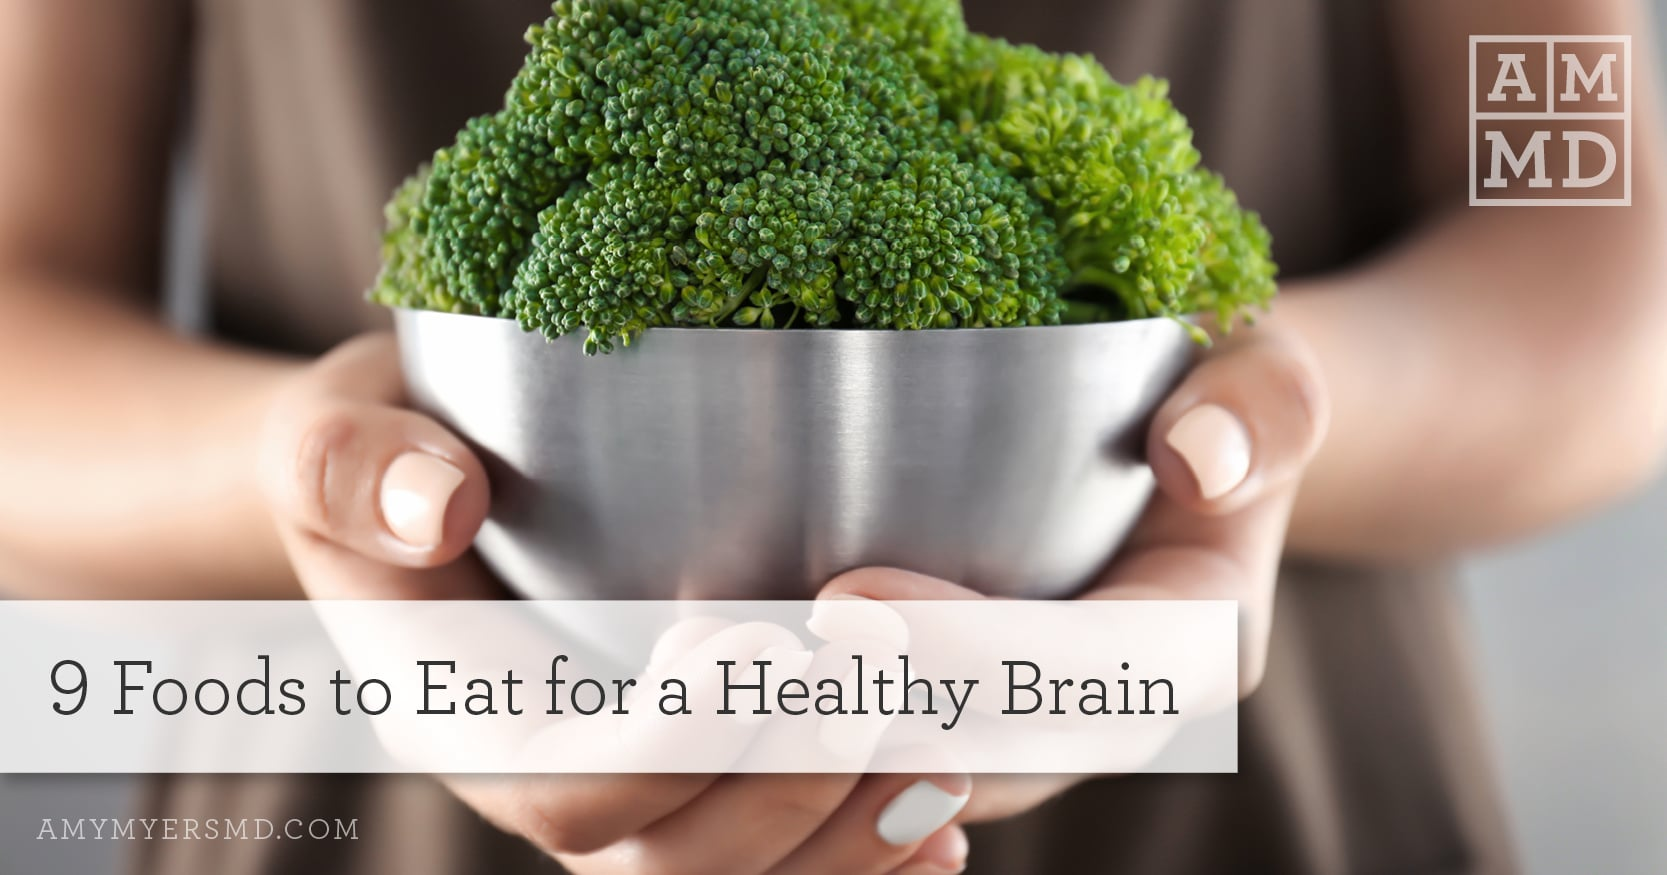 9 Foods to Eat for a Healthy Brain - A Woman holding a Bowl of Broccoli - Featured image - Amy Myers MD